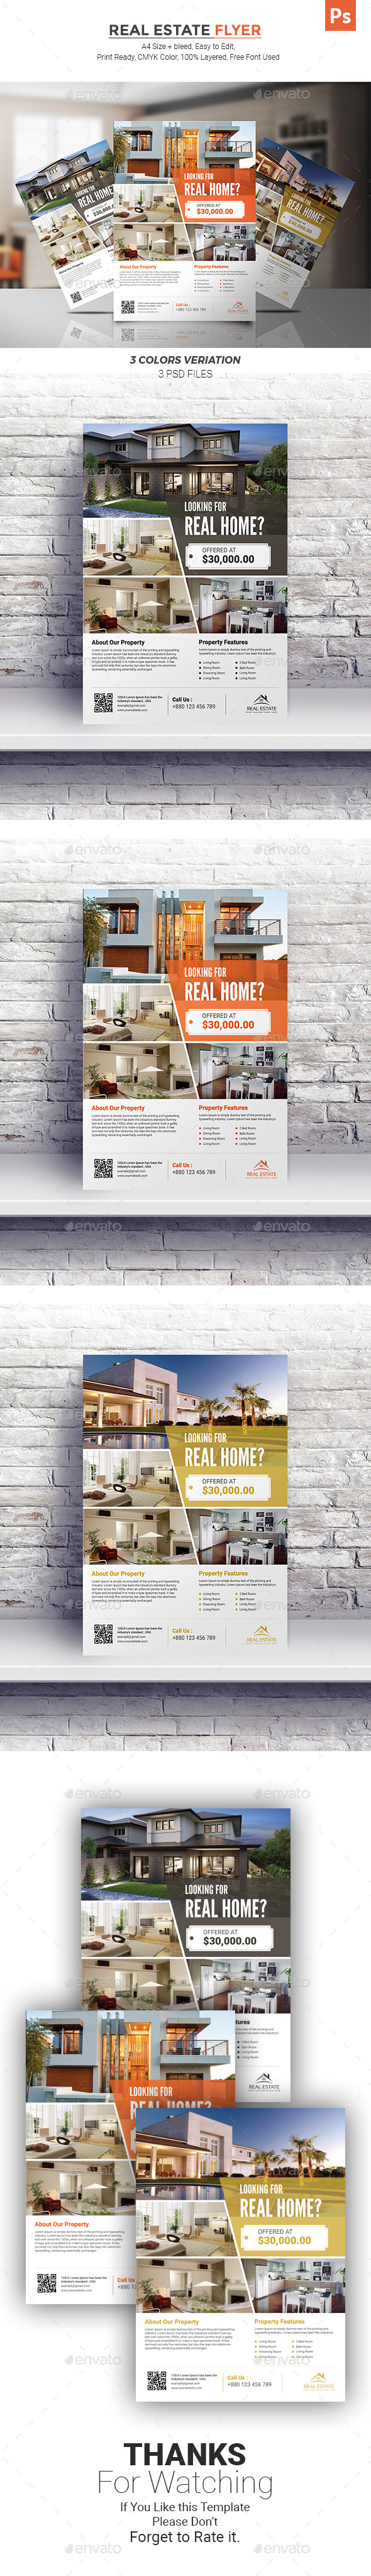 GraphicRiver Real Estate Flyer 21035796